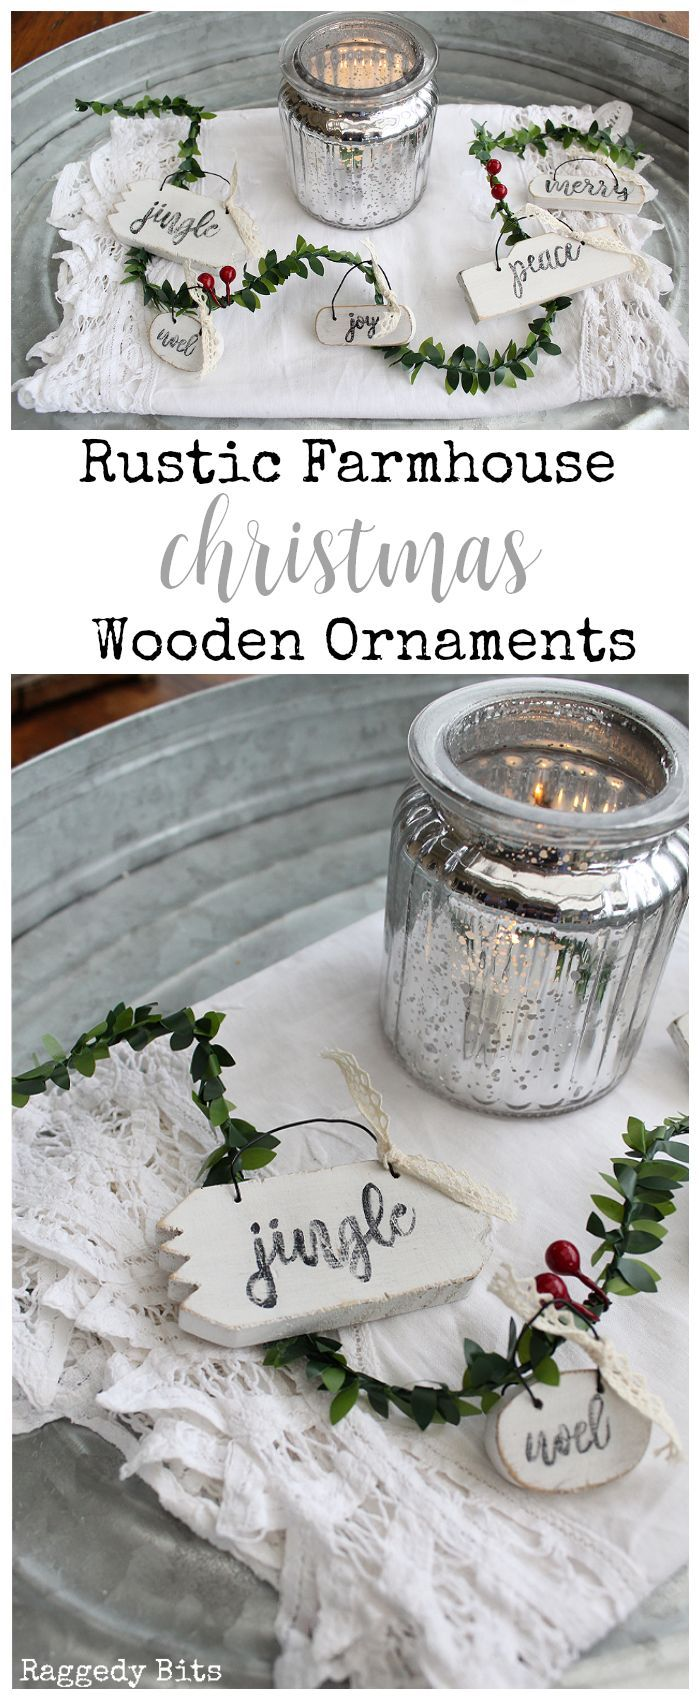 With Christmas just around the corner sharing some fun Rustic Farmhouse Wooden Christmas Ornaments to make | 2017 Ornament Exchange | www.raggedy-bits.com | #christmas #ornaments #DIY #rustic #farmhouse #wood